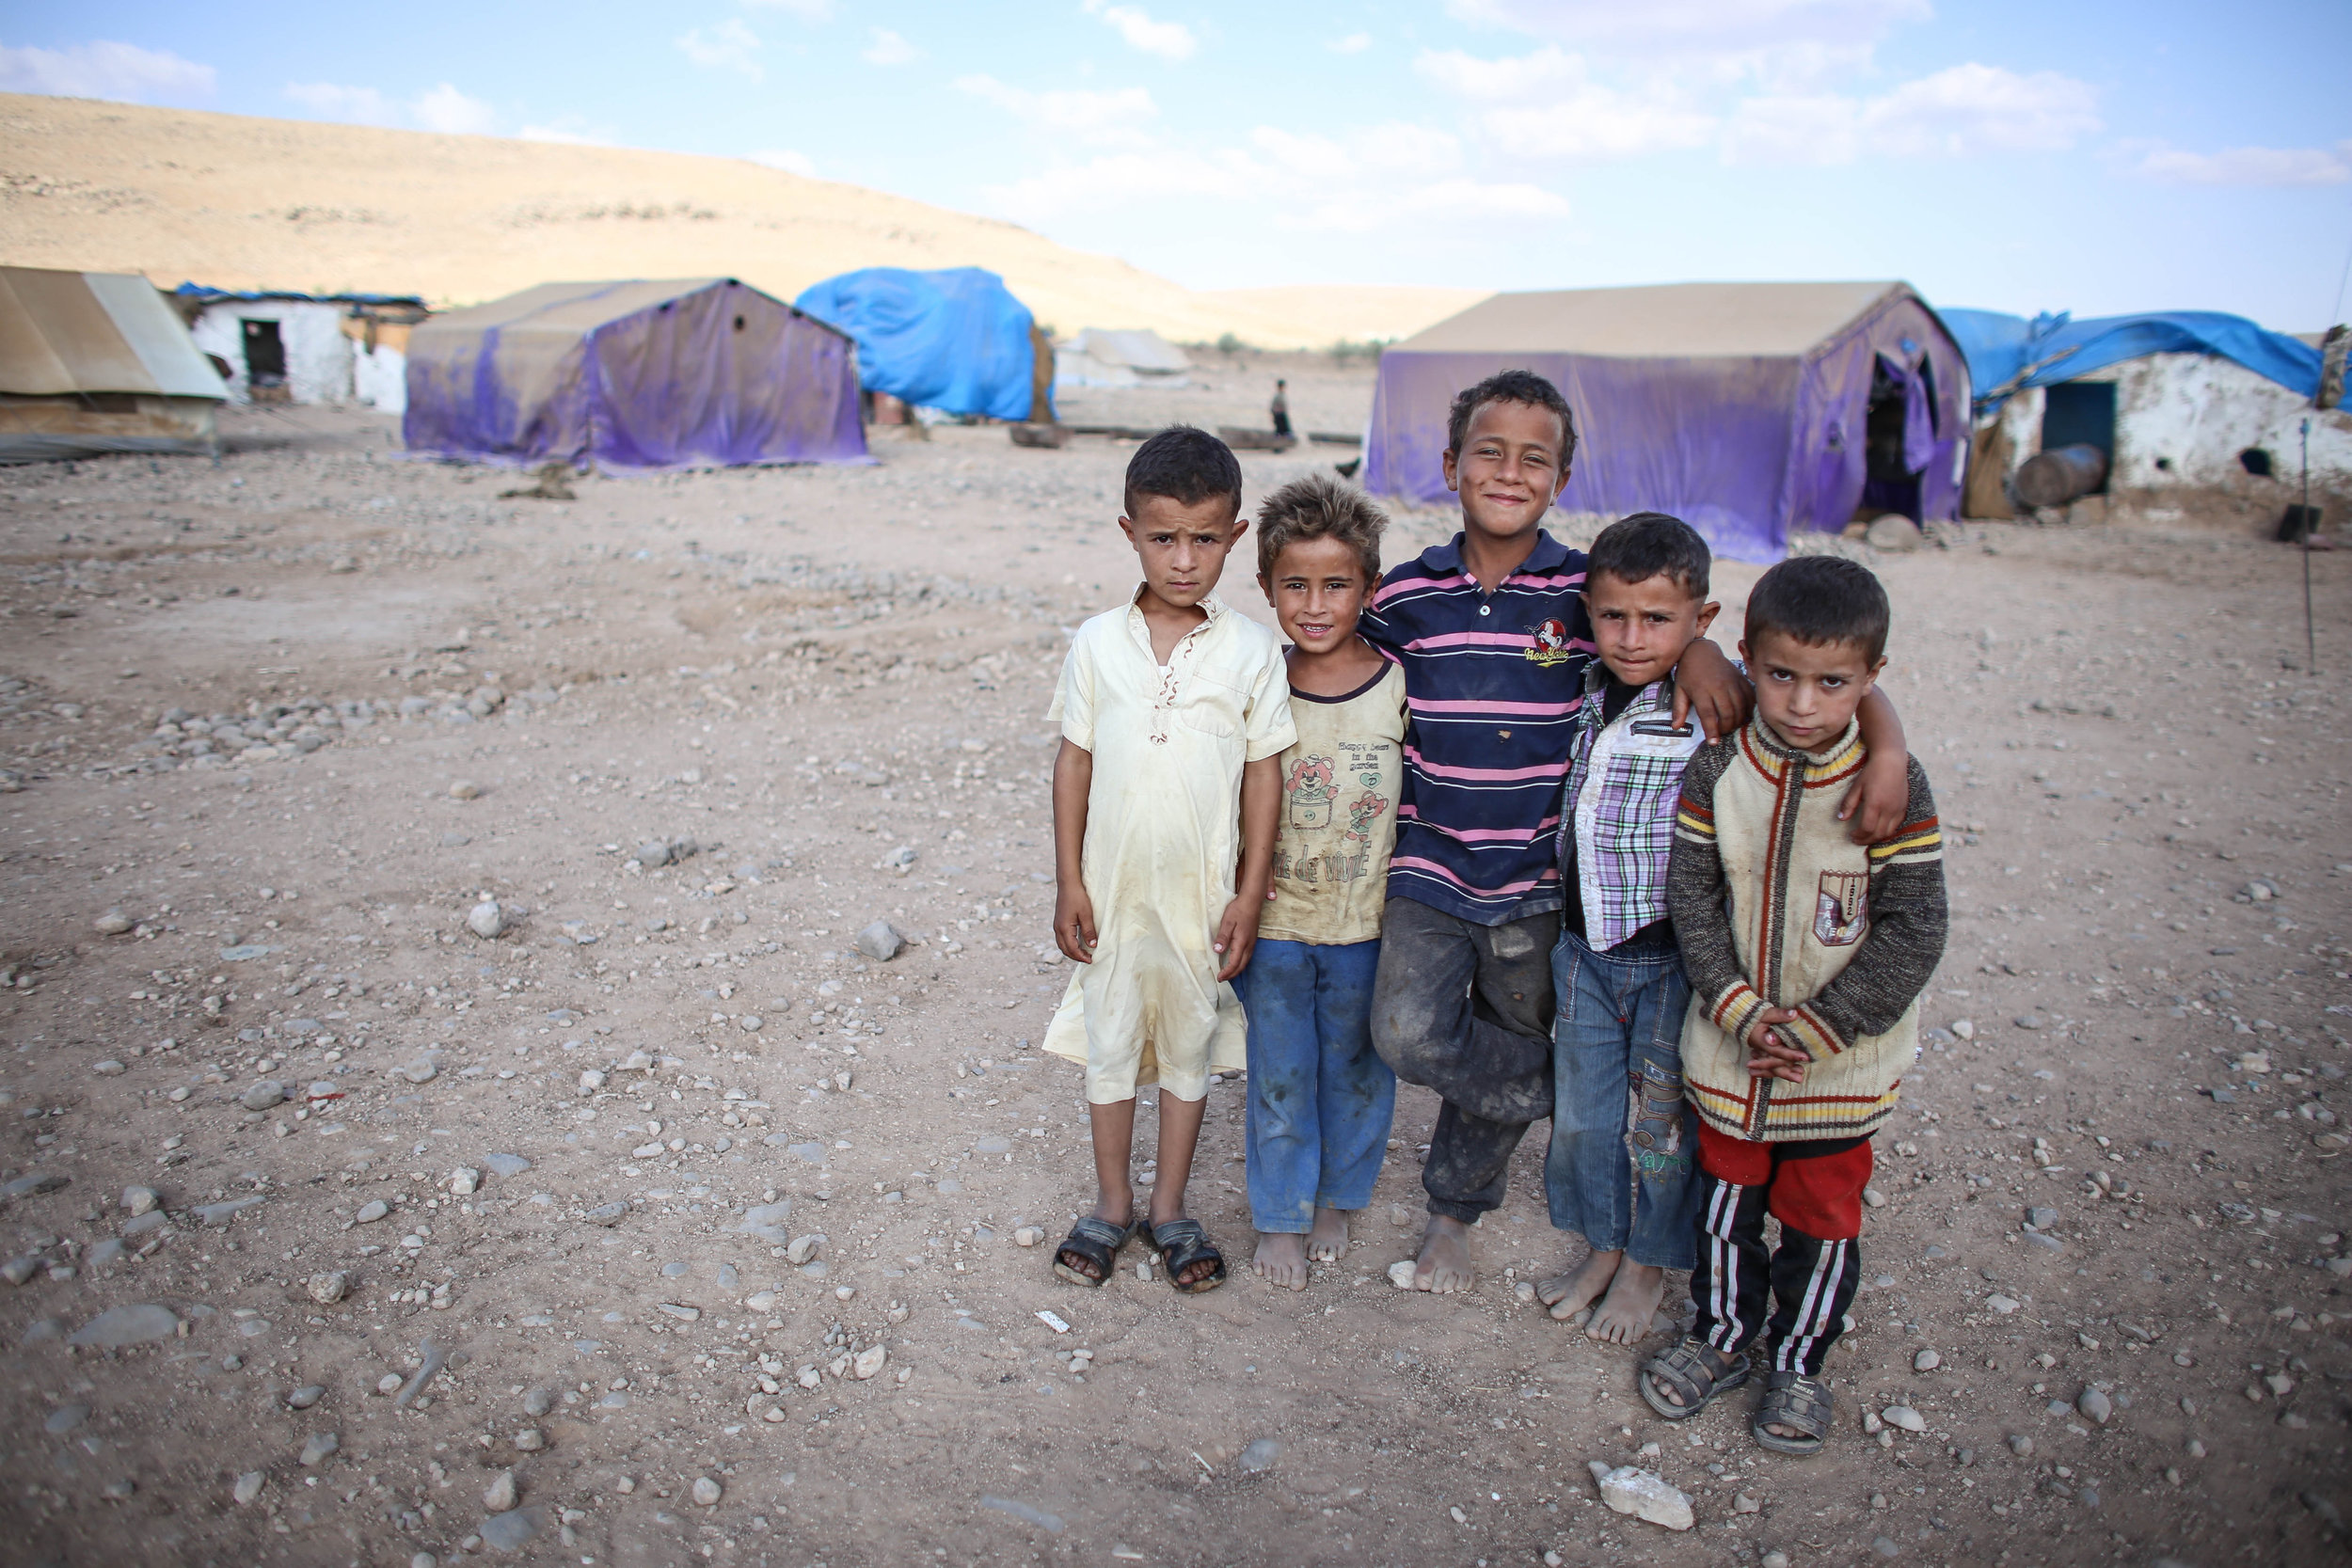 syrian children. photo:  Din Mohd Yaman/shutterstock